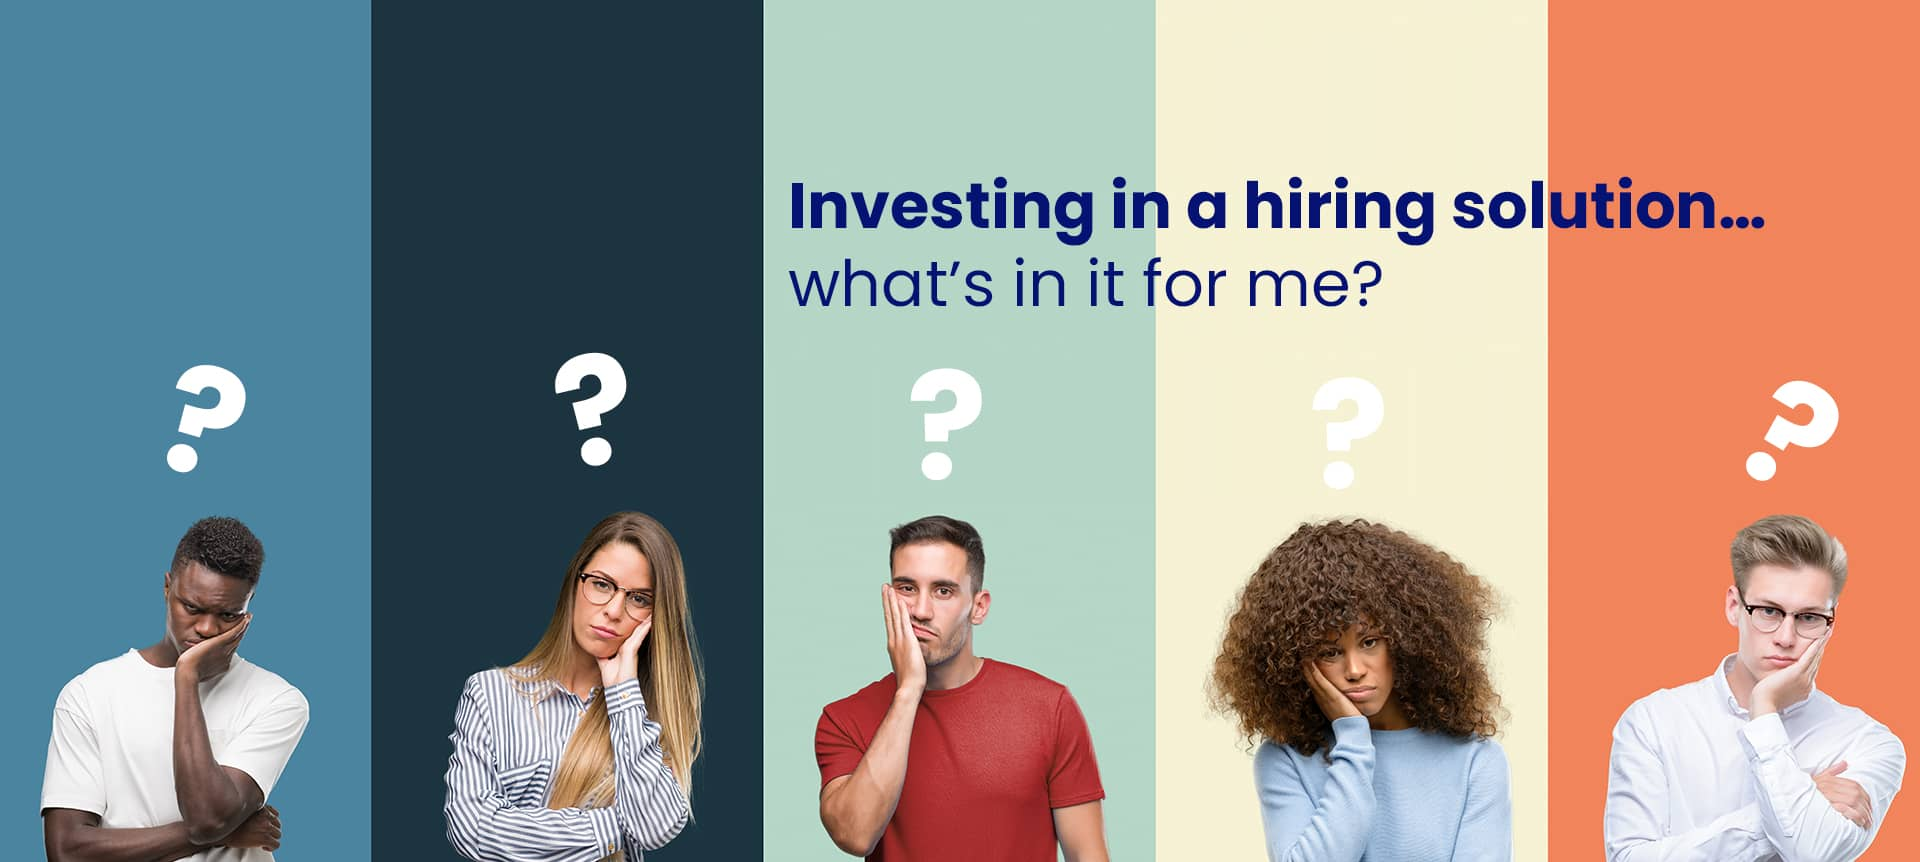 A group of recruiters thinking of investing in a hiring solution